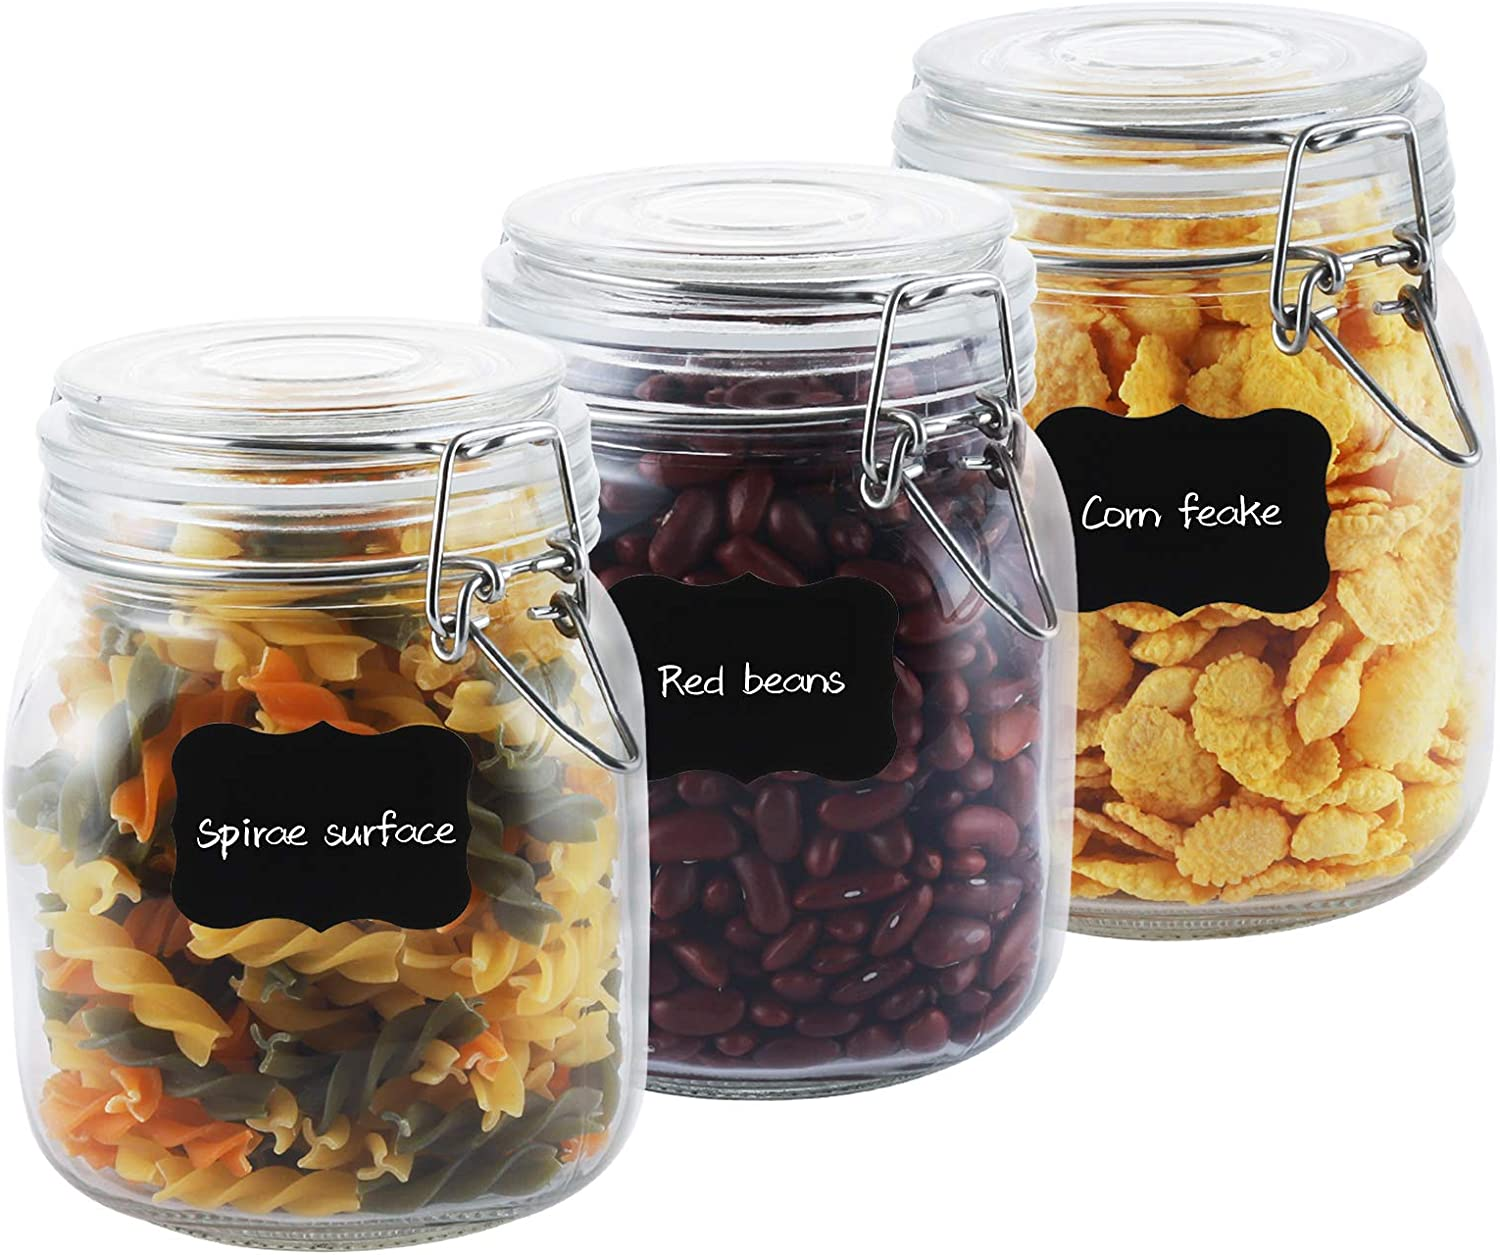 Airtight Boston Mall Glass Canisters with Lids Food Storage Large Inexpensive Jars 34oz